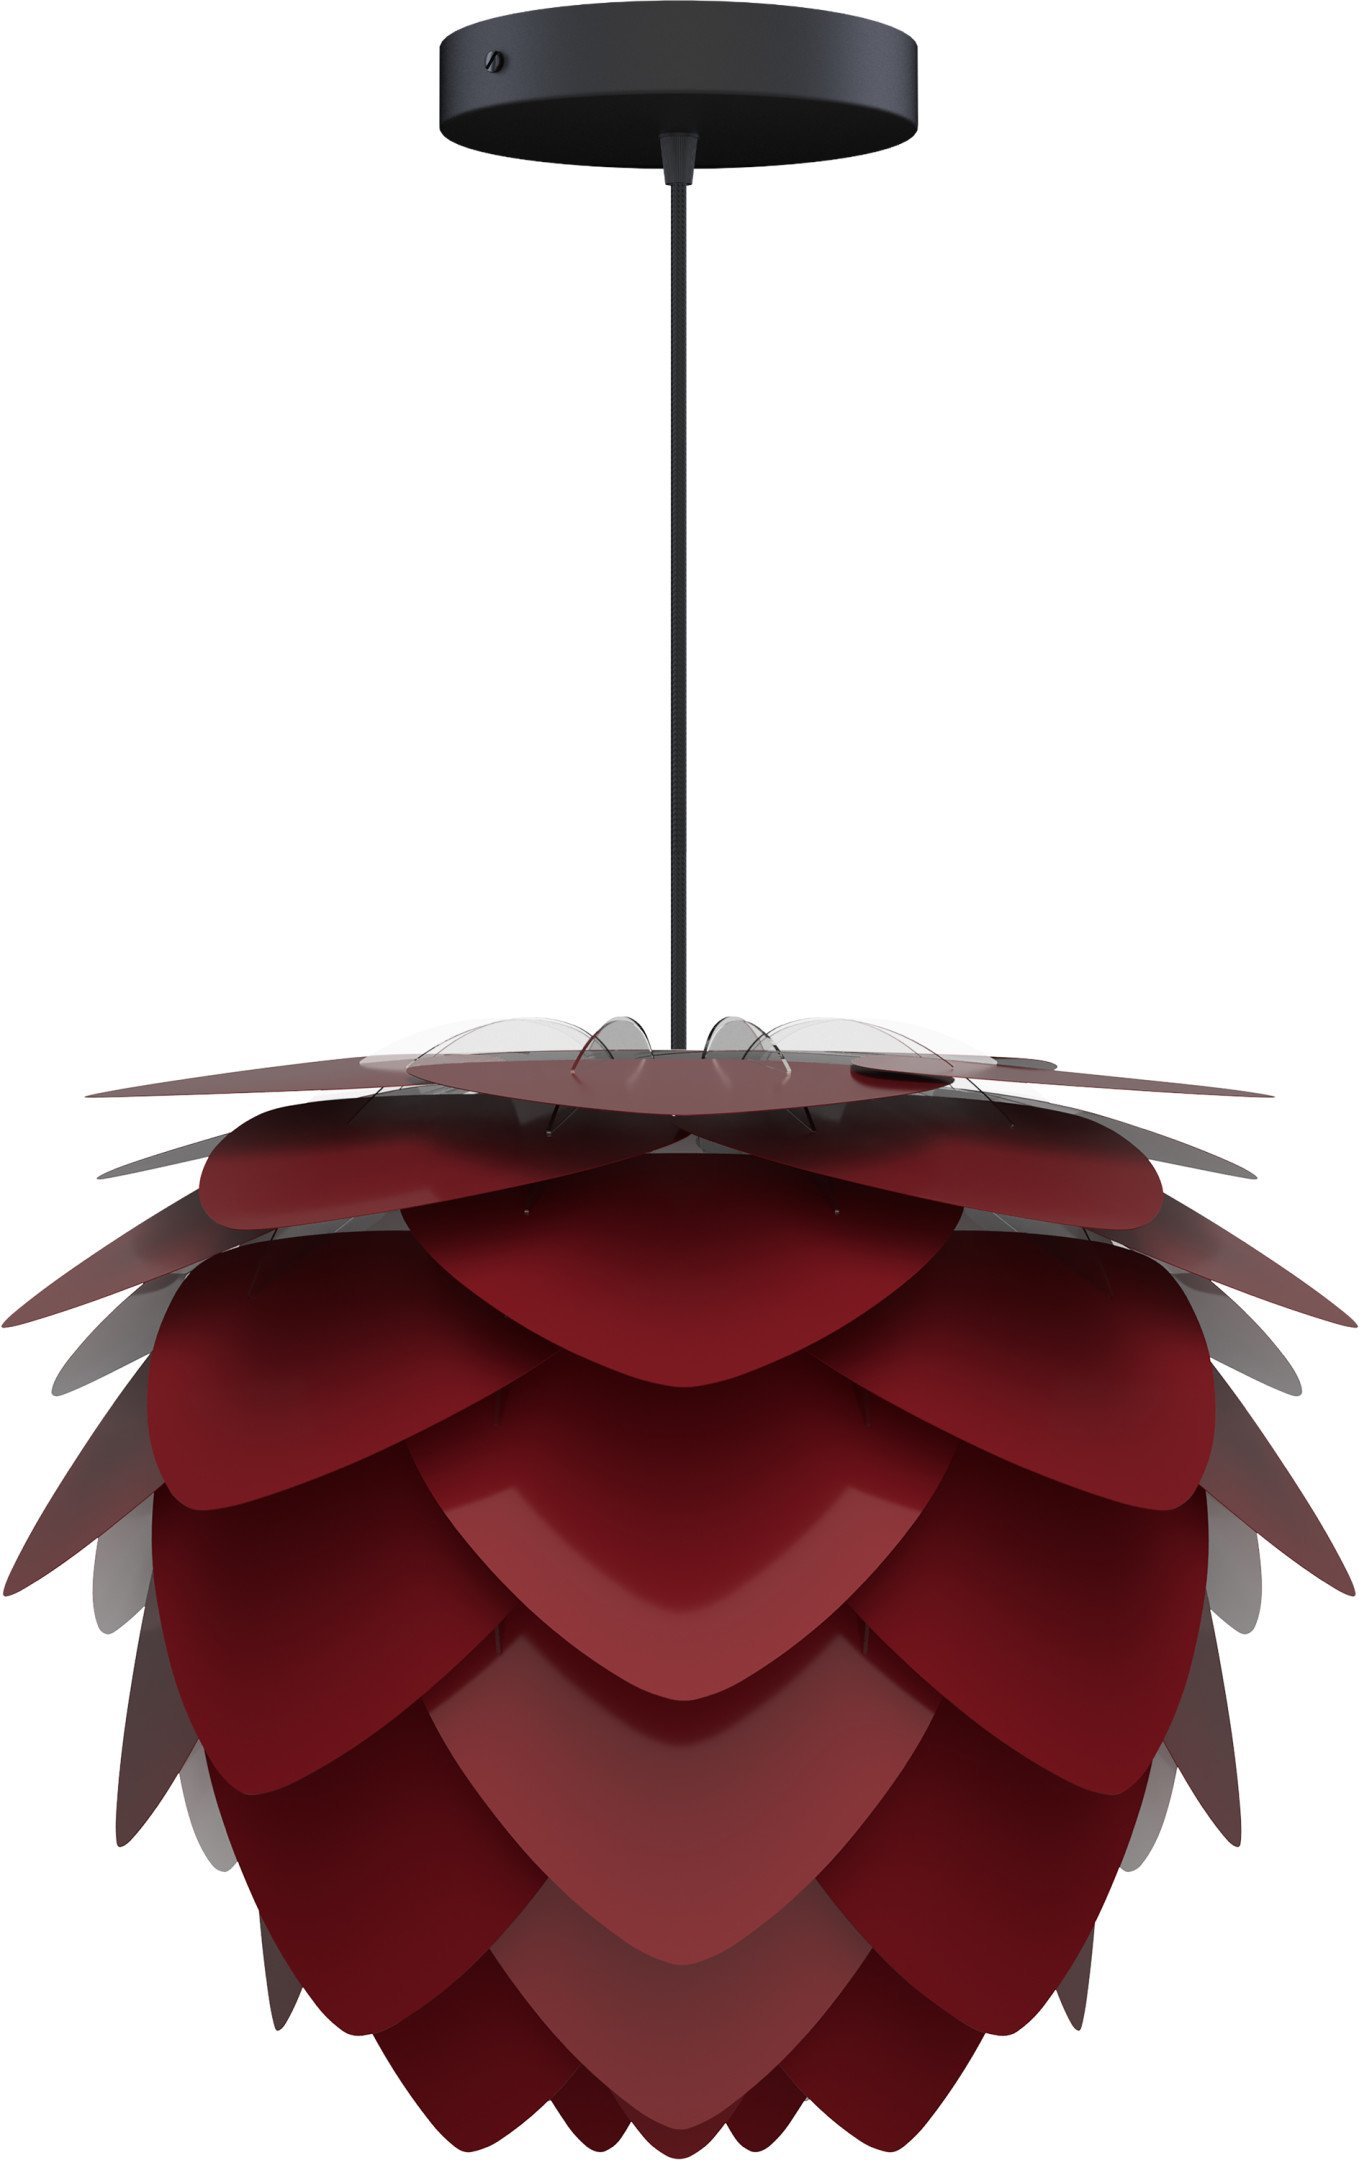 Aluvia Mini Lamp Shade Ruby Red, UMAGE - 495402 - photo